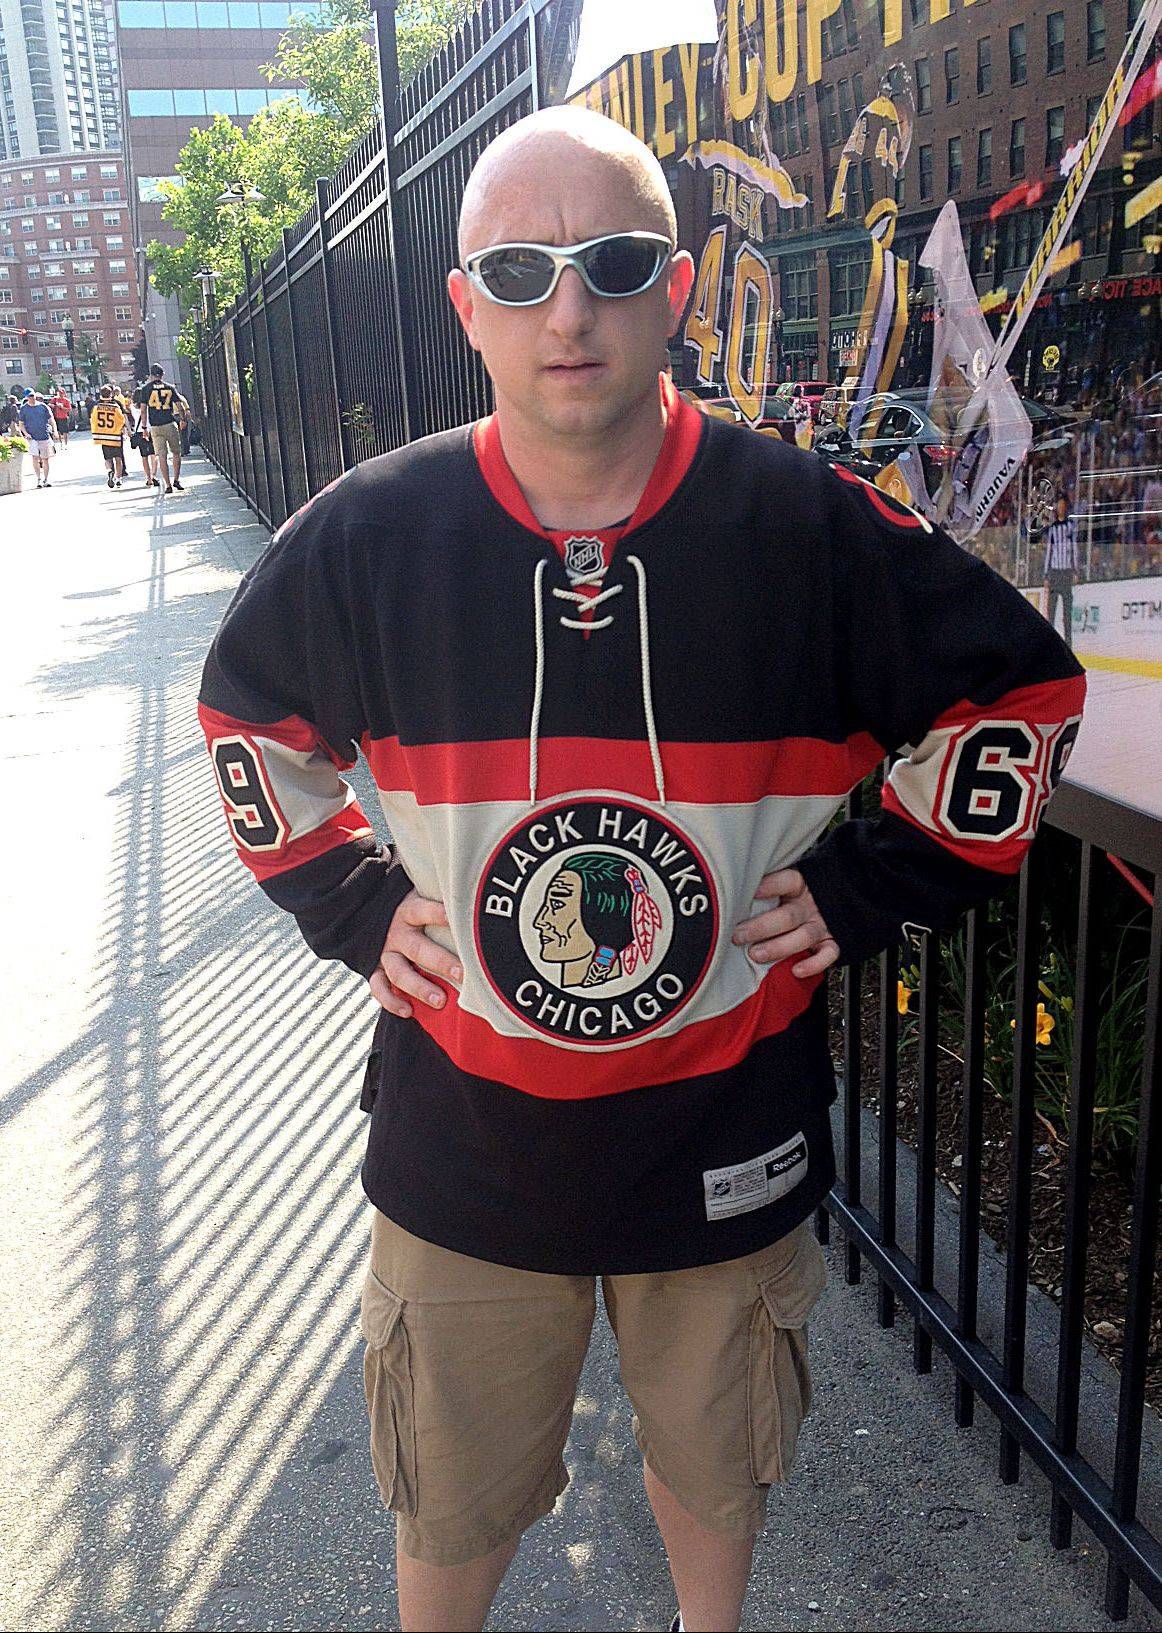 Shawn Vercillo of Elmhurst made the trip to Boston to take in Game 6 of the Stanley Cup Final at TD Garden. The Hawks season-ticket holder said he regretted not going to Philadelphia in 2010 when the Blackhawks won the Cup.